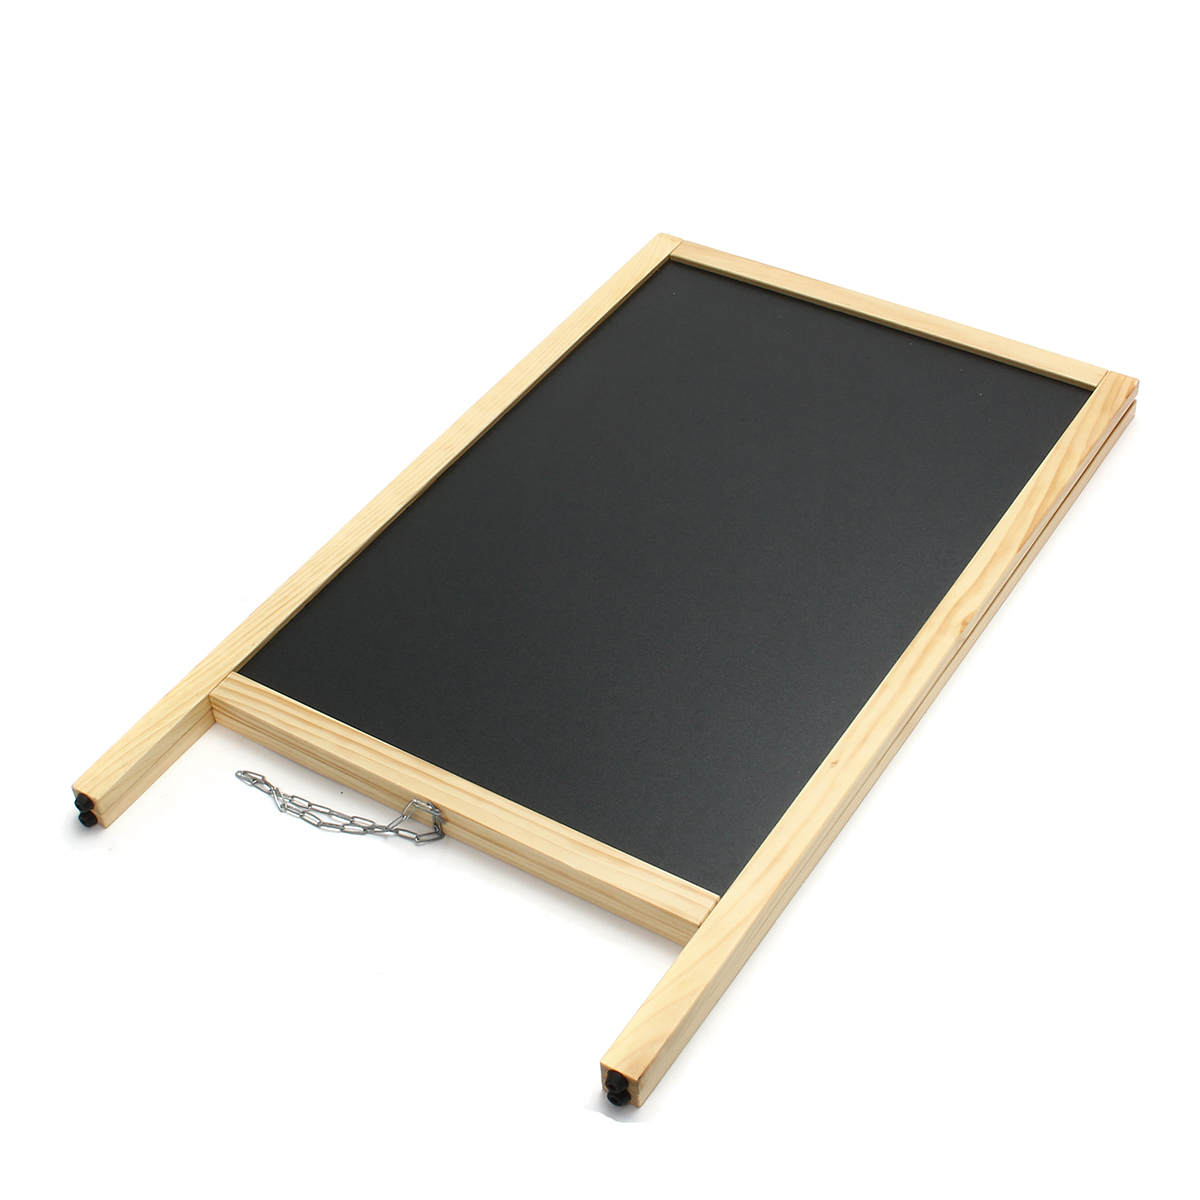 24x39 Inch Double-sided Foldable Pinewood Frame Chalkboard Wedding Shop Sign Memo Message Menu Board